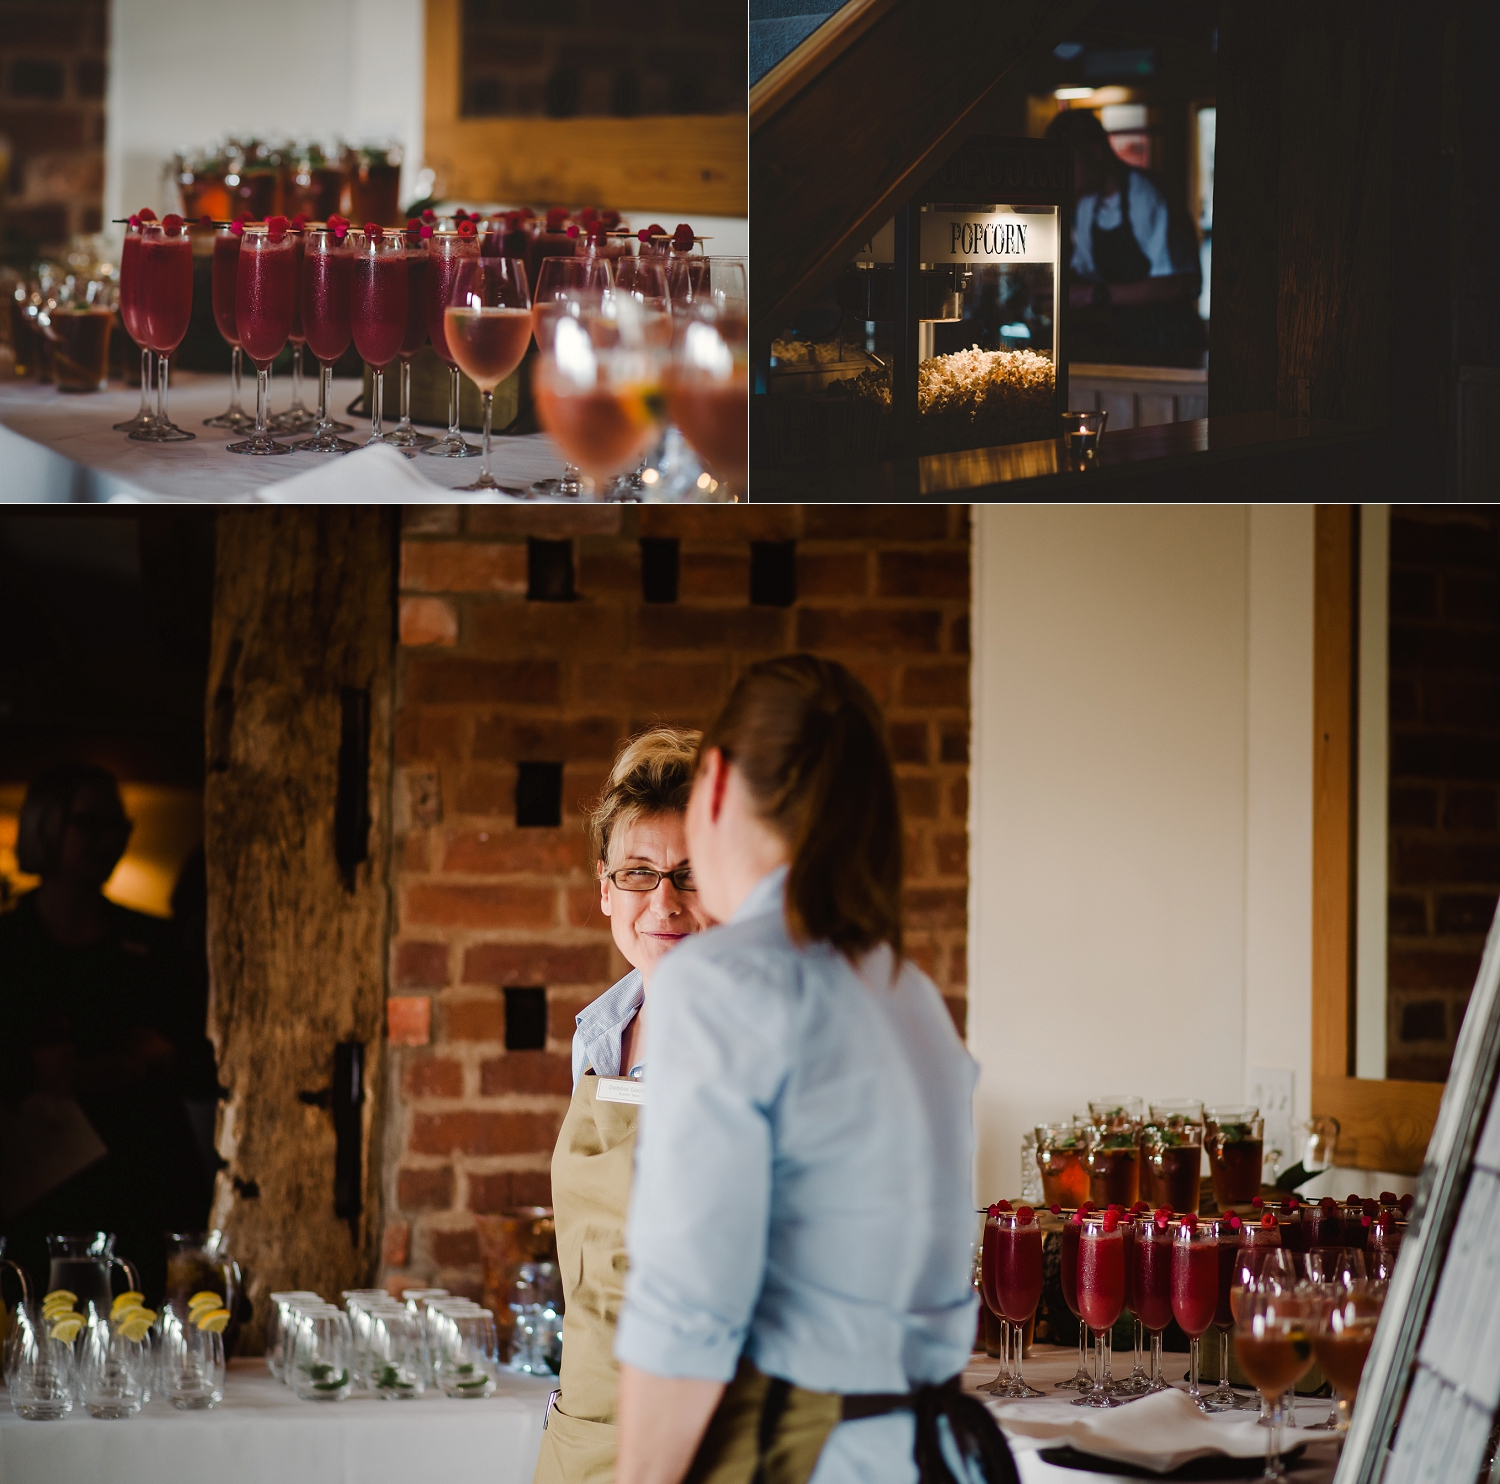 Curradine_Tasting_Event_Oct_2017_amytiphoto_0039.jpg